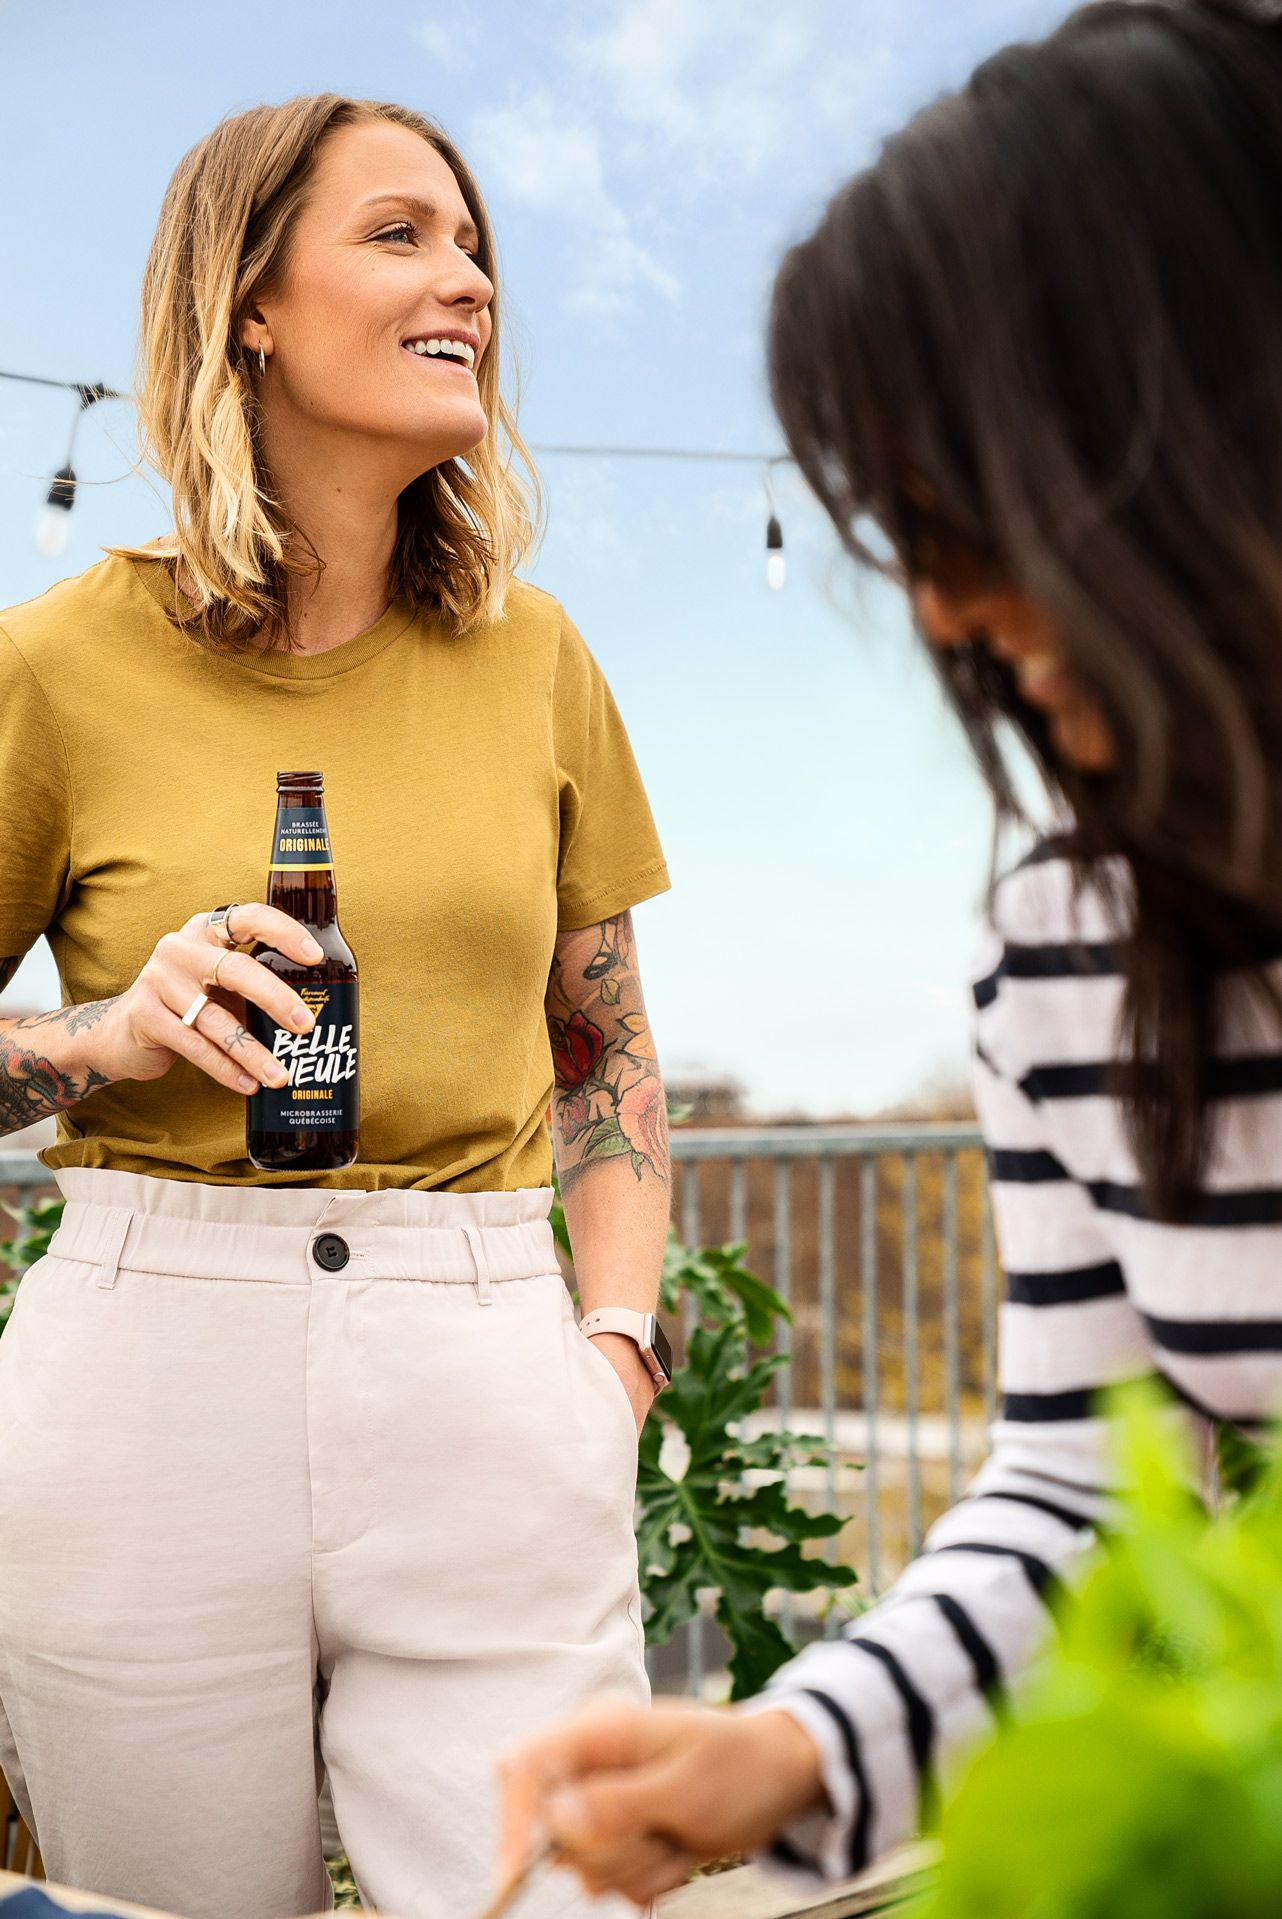 blonde woman wearing mustard shirt and beige pants holding Belle Gueule beer in her hand laughing with dark haired woman blurred in the foreground laughing while preparing homemade pizza wearing black and white stripped shirt photographed by Bruno Florin for Belle Gueule with Forsman & Bodenfors